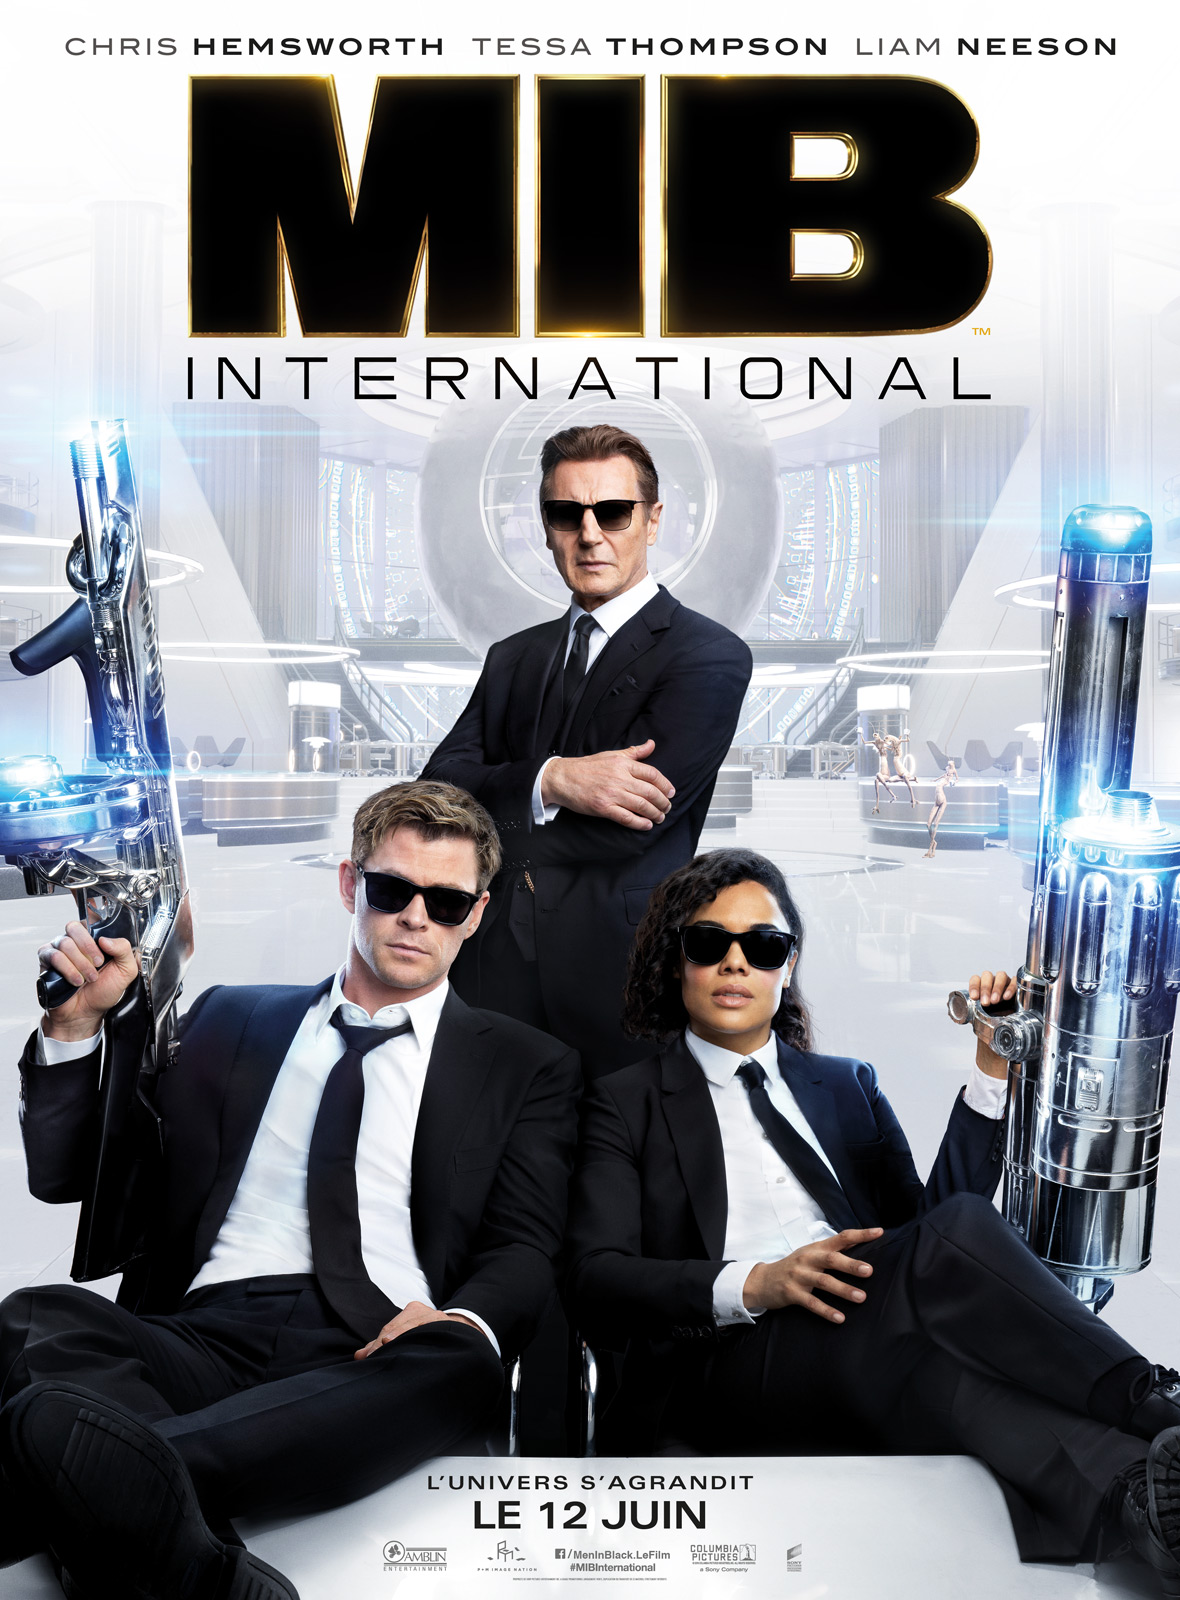 Men in Black:International critique,Chris Hemsworth;Tessa Thompson;Liam Nesson;Emma Thompson